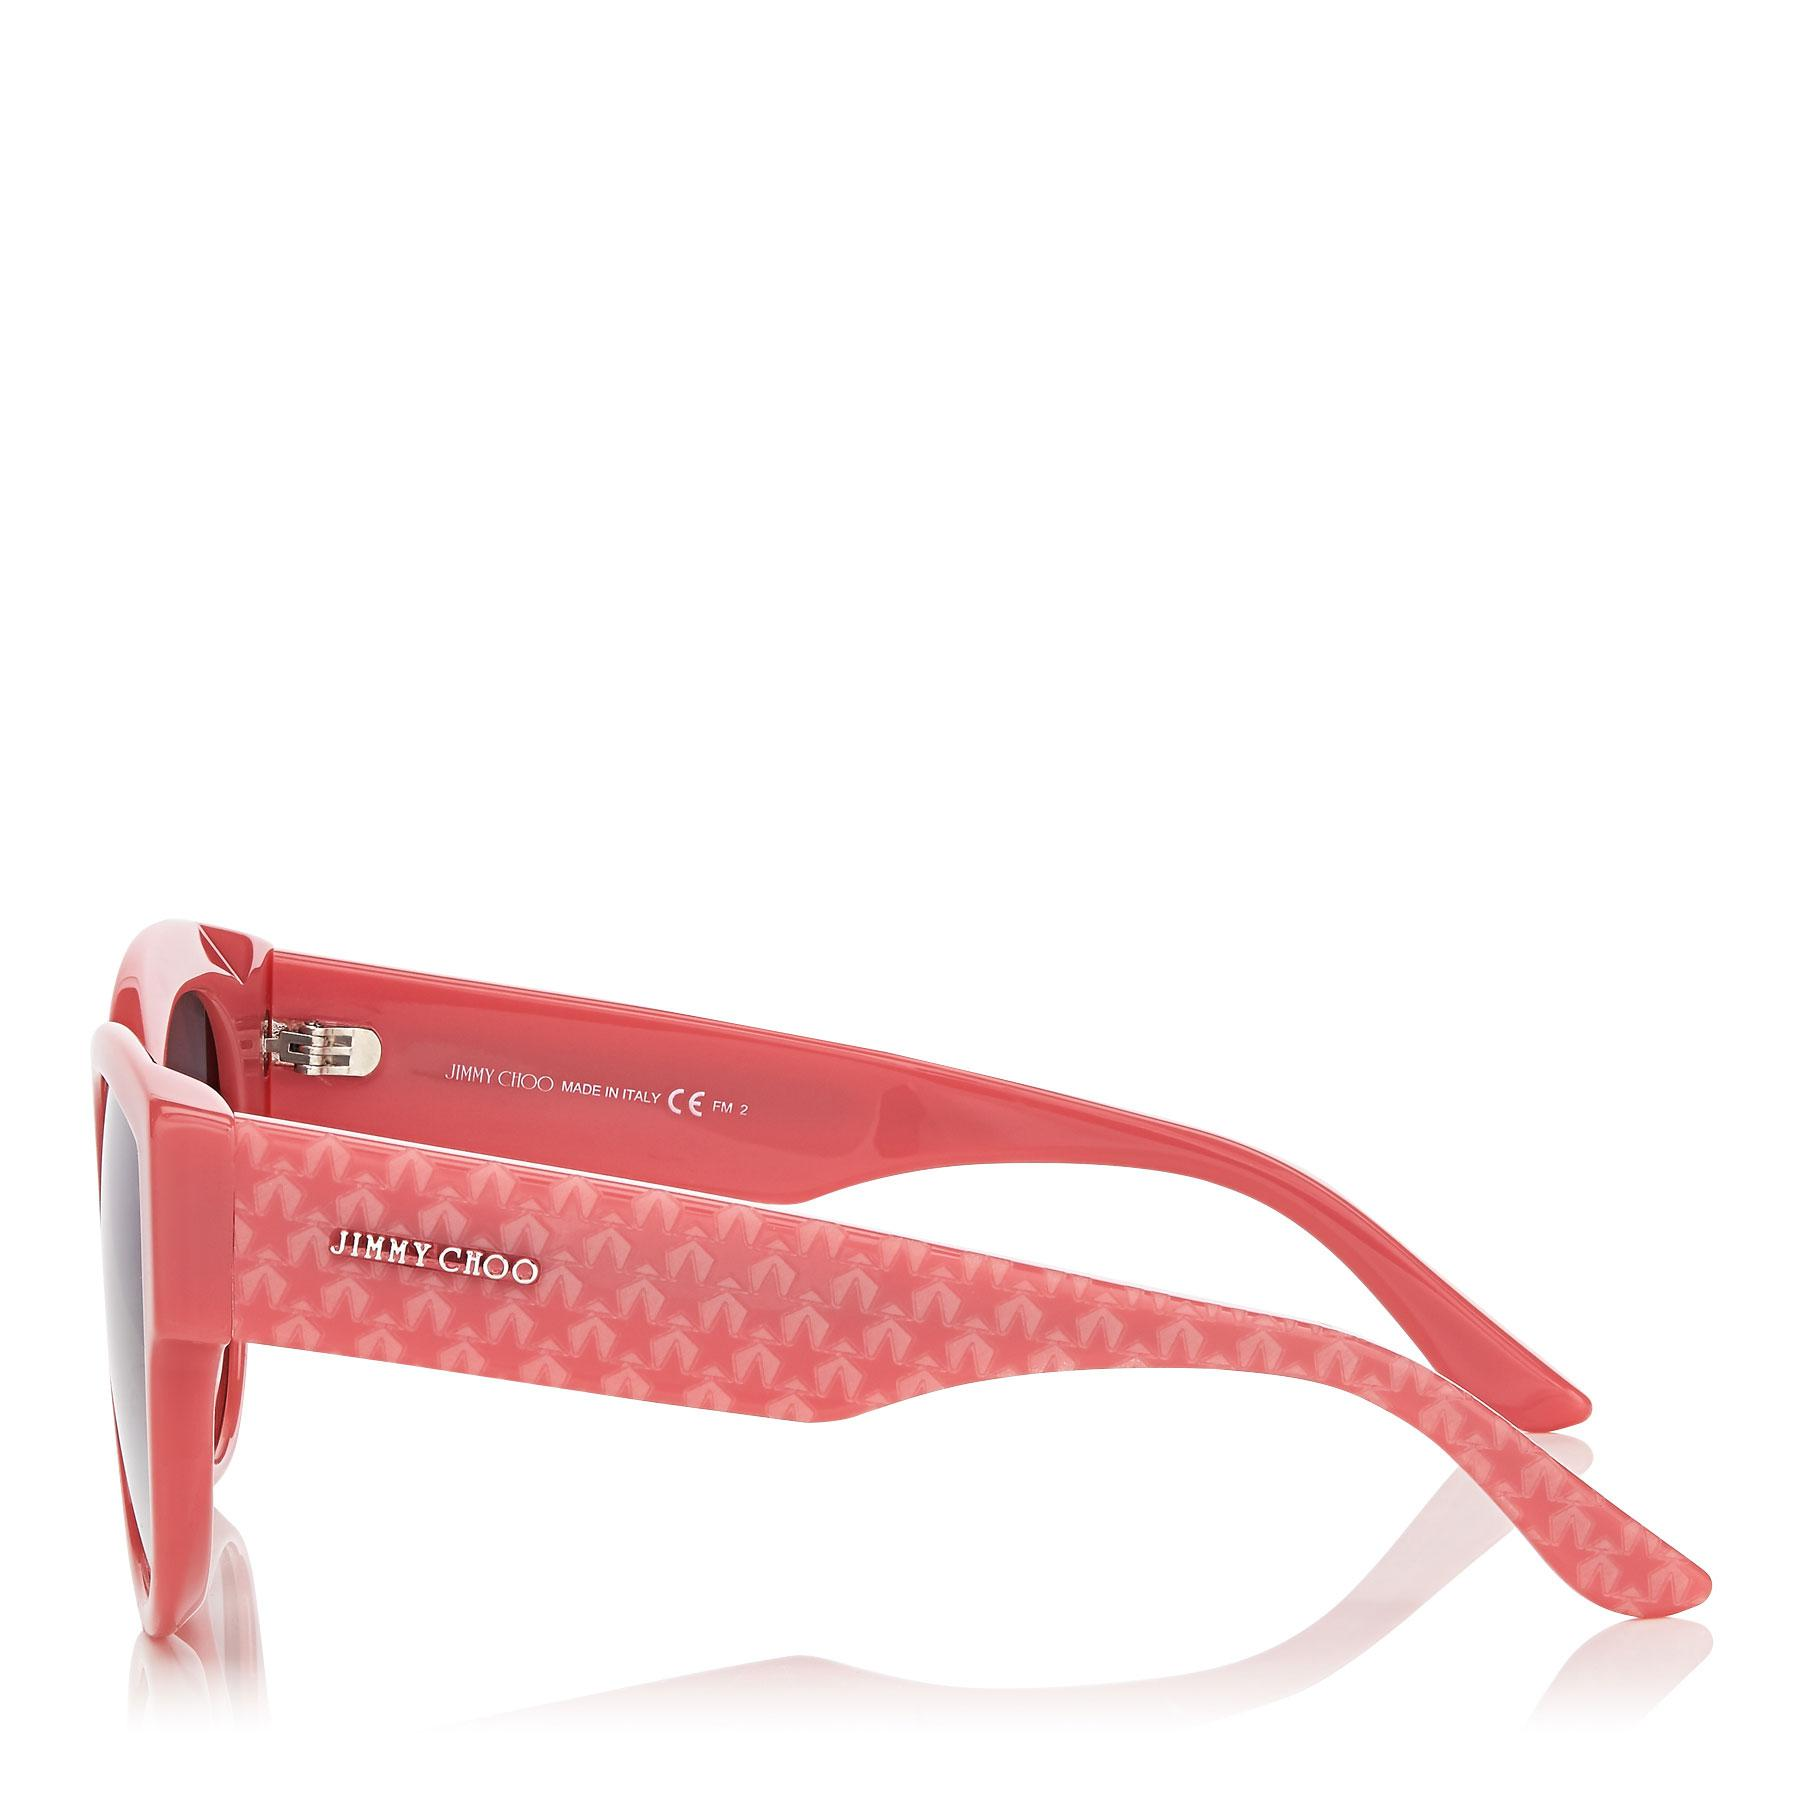 1e60b5893b Jimmy Choo - Pollie Pink Cat-eye Sunglasses With Star Detailing - Lyst.  View fullscreen